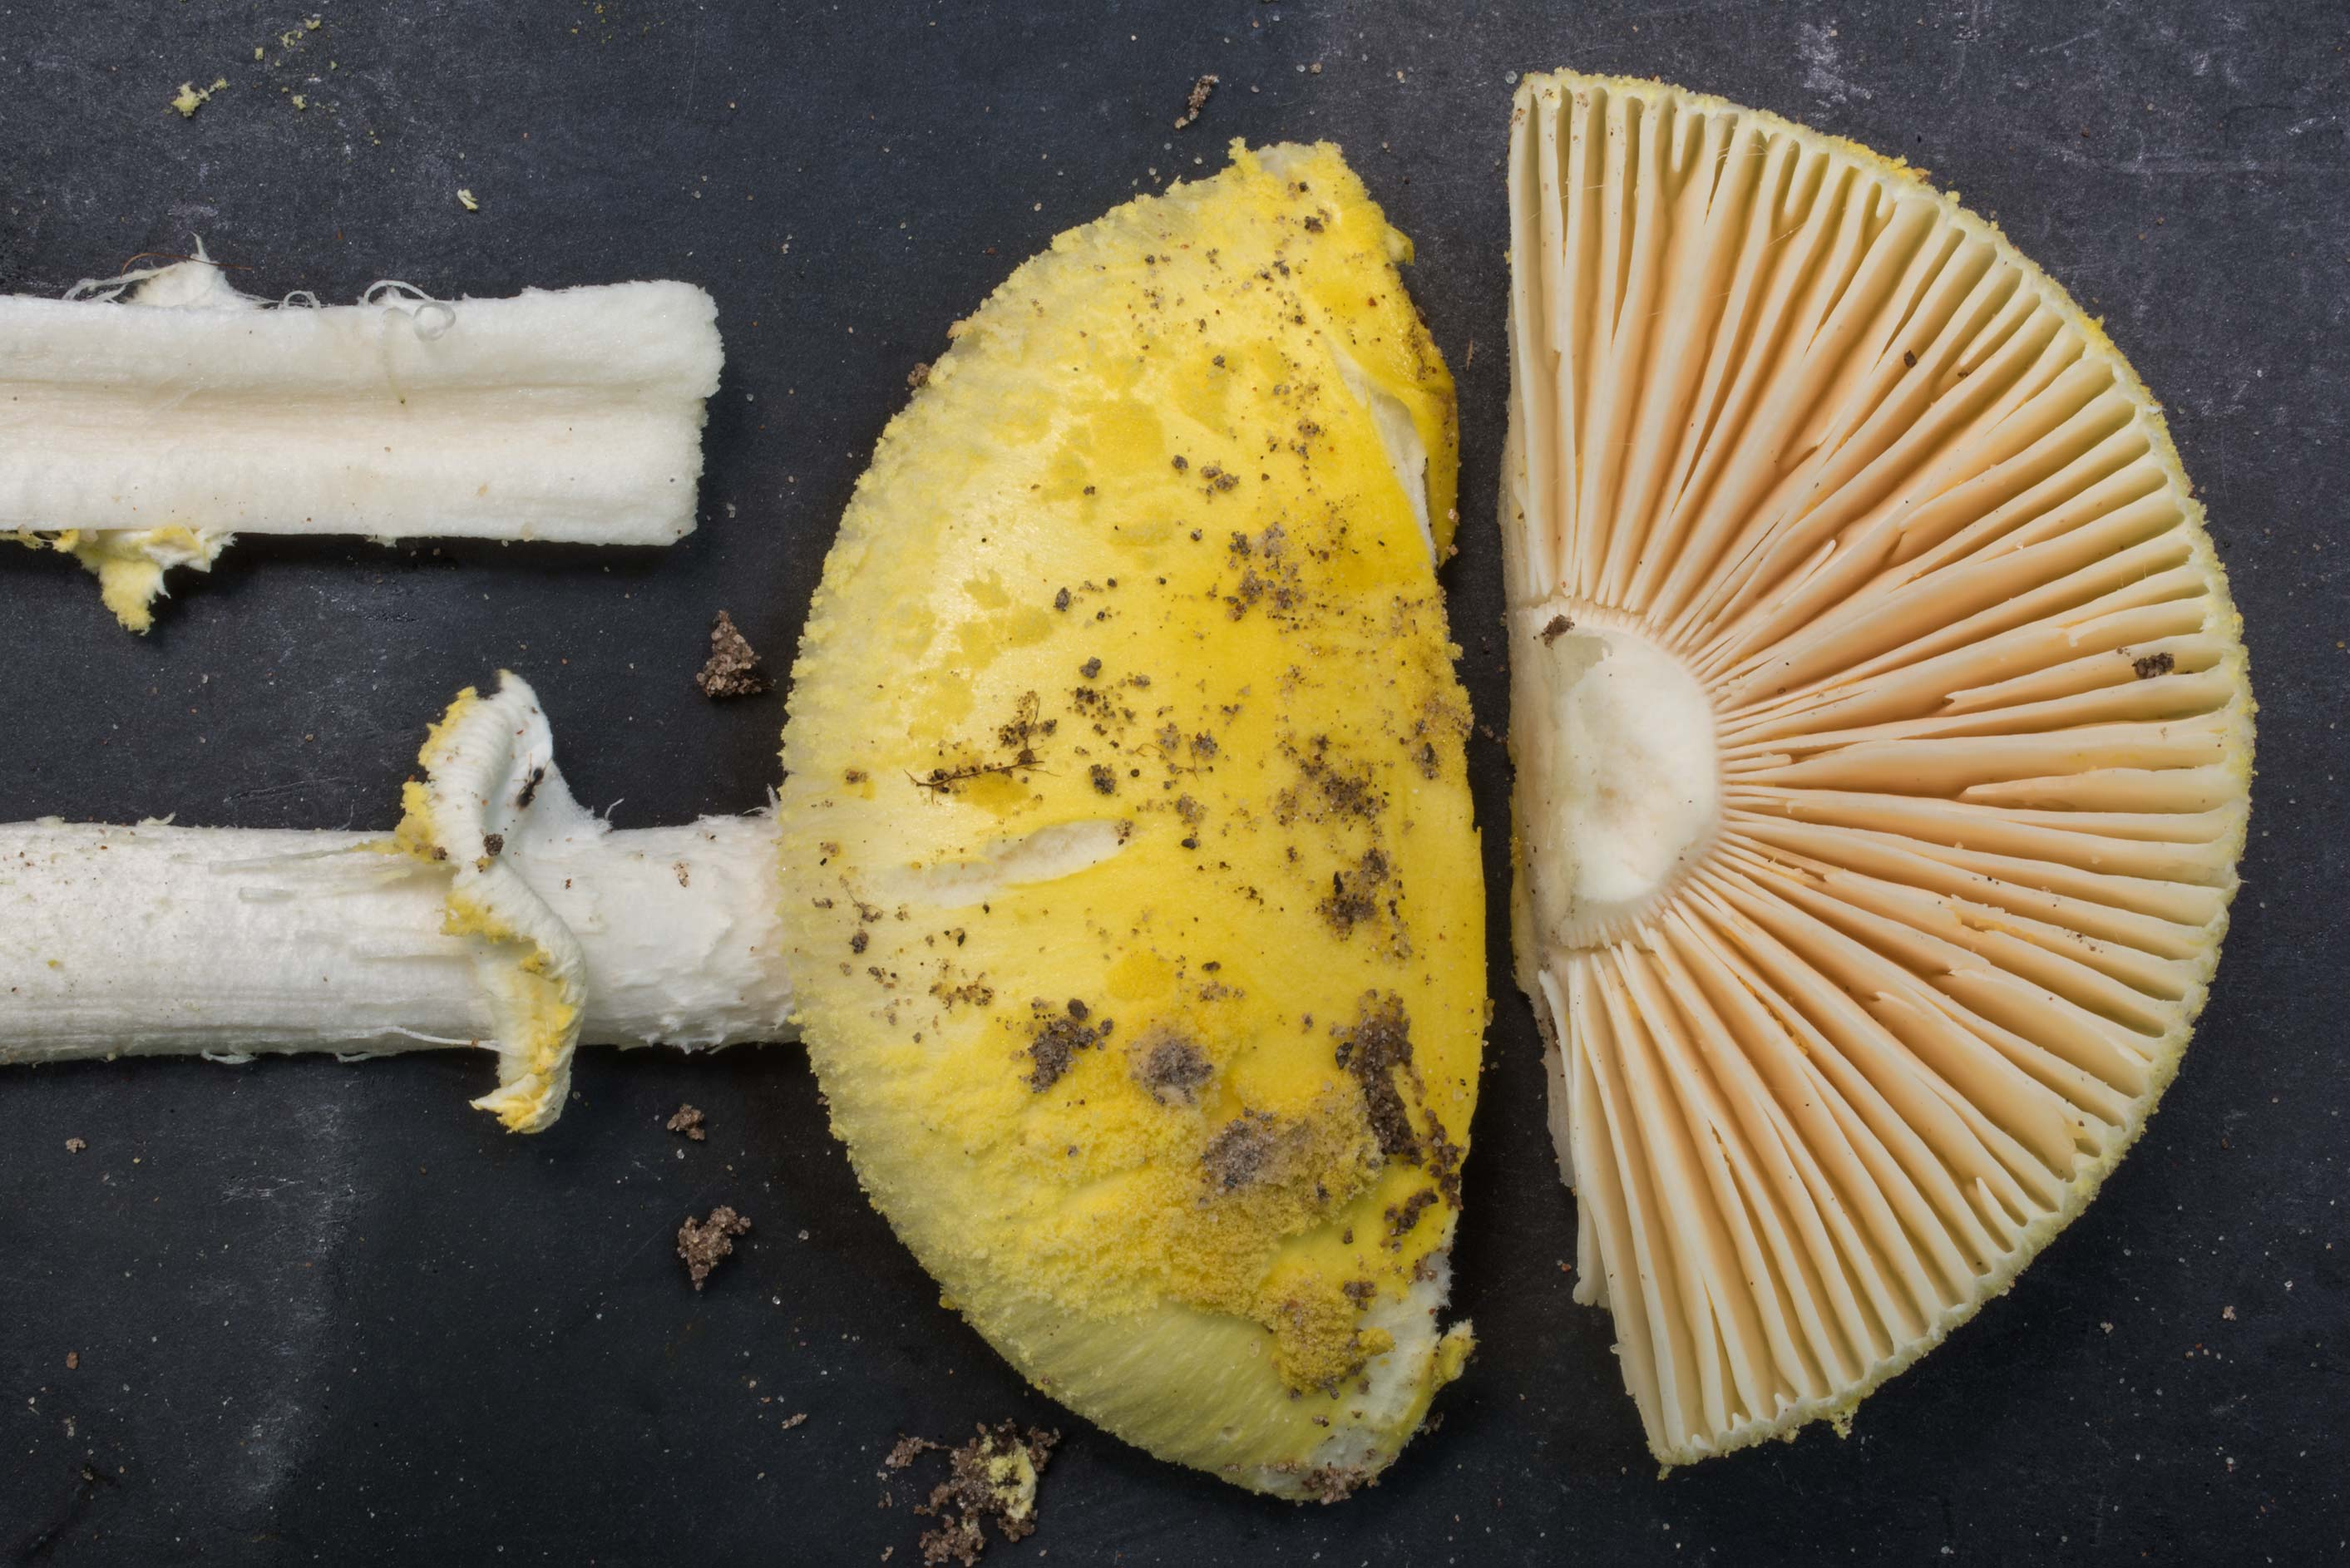 Cap and gills of Gulf Coast lemon Amanita...in Sam Houston National Forest. Texas